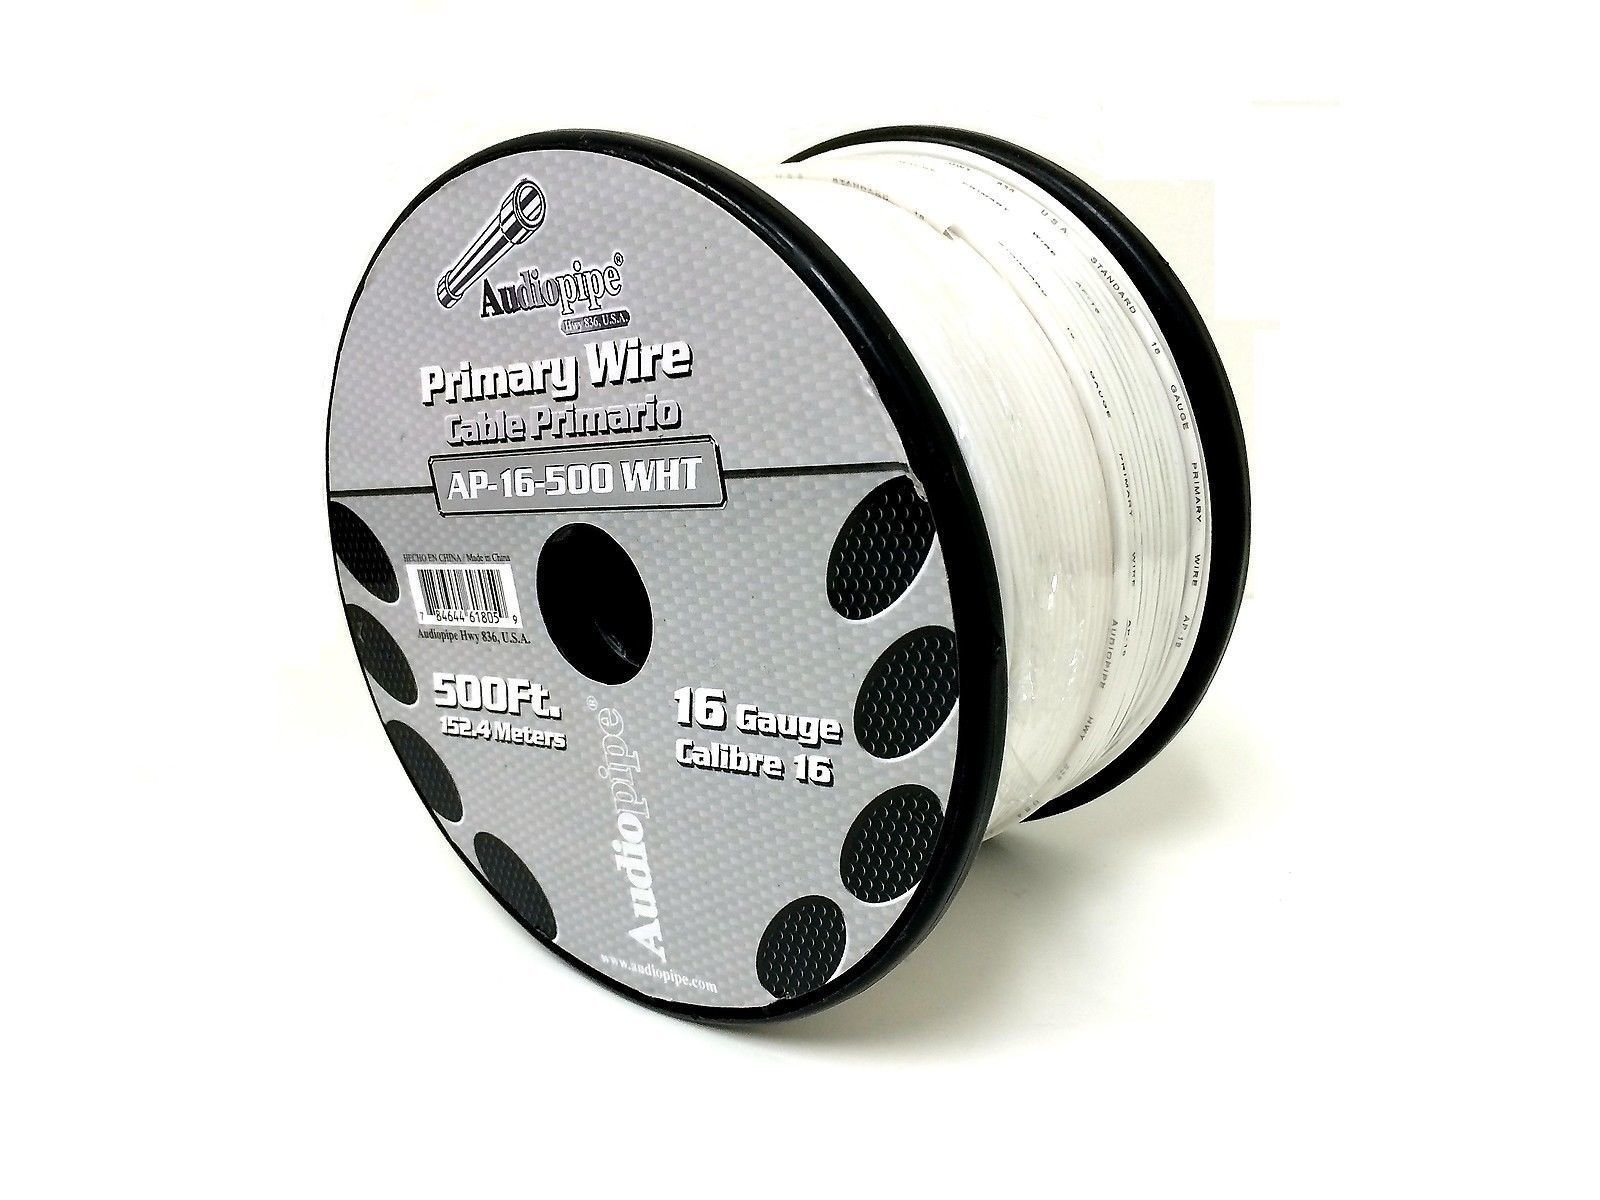 3 Rolls of 16 Gauge - 500' each Audiopipe Car Audio Home Primary Remote Wire by Audiopipe (Image #7)